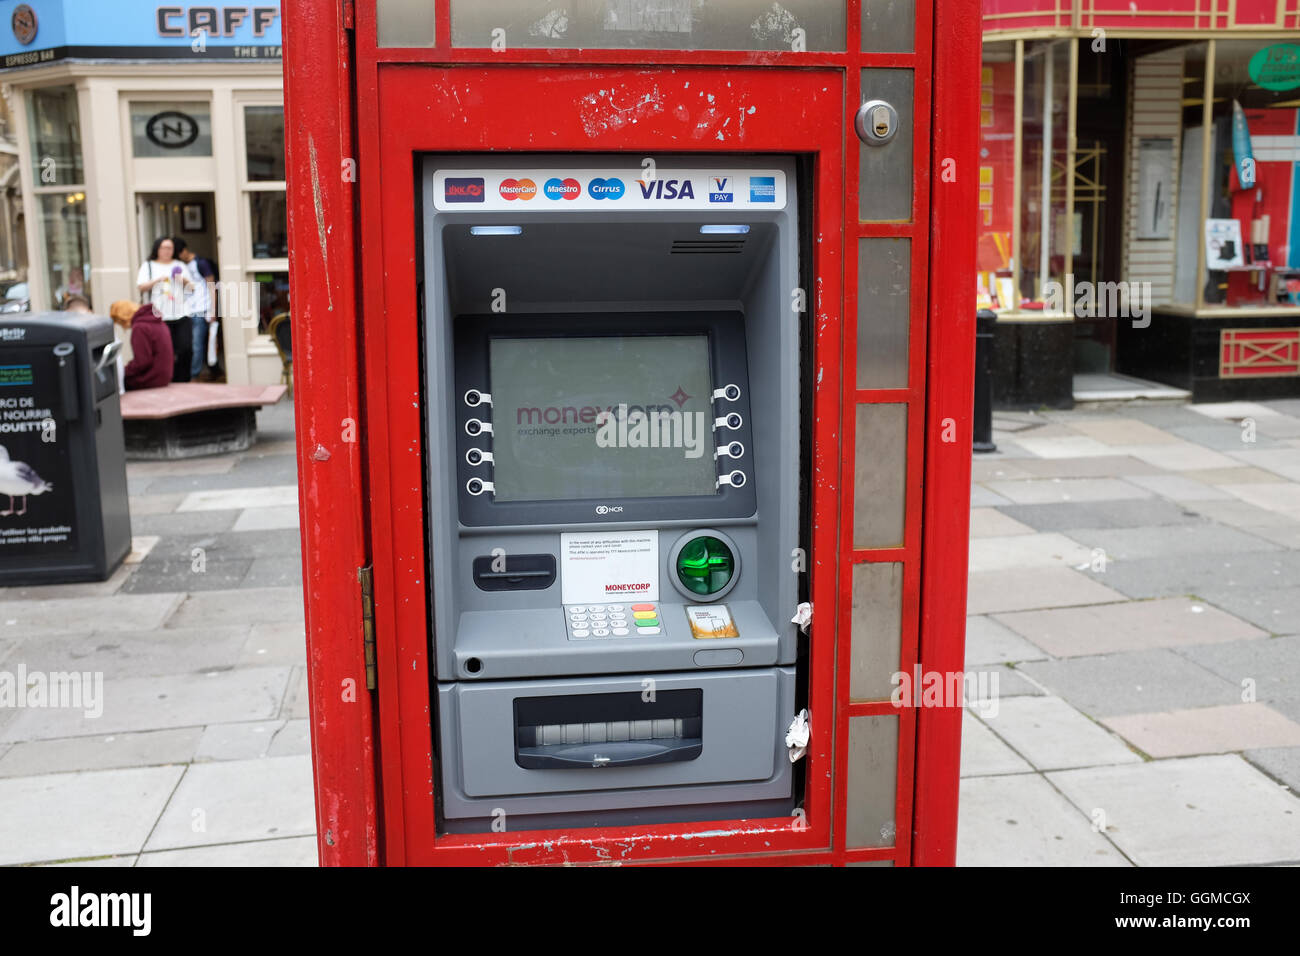 A traditional red phone box in England converted into a cash machine. - Stock Image